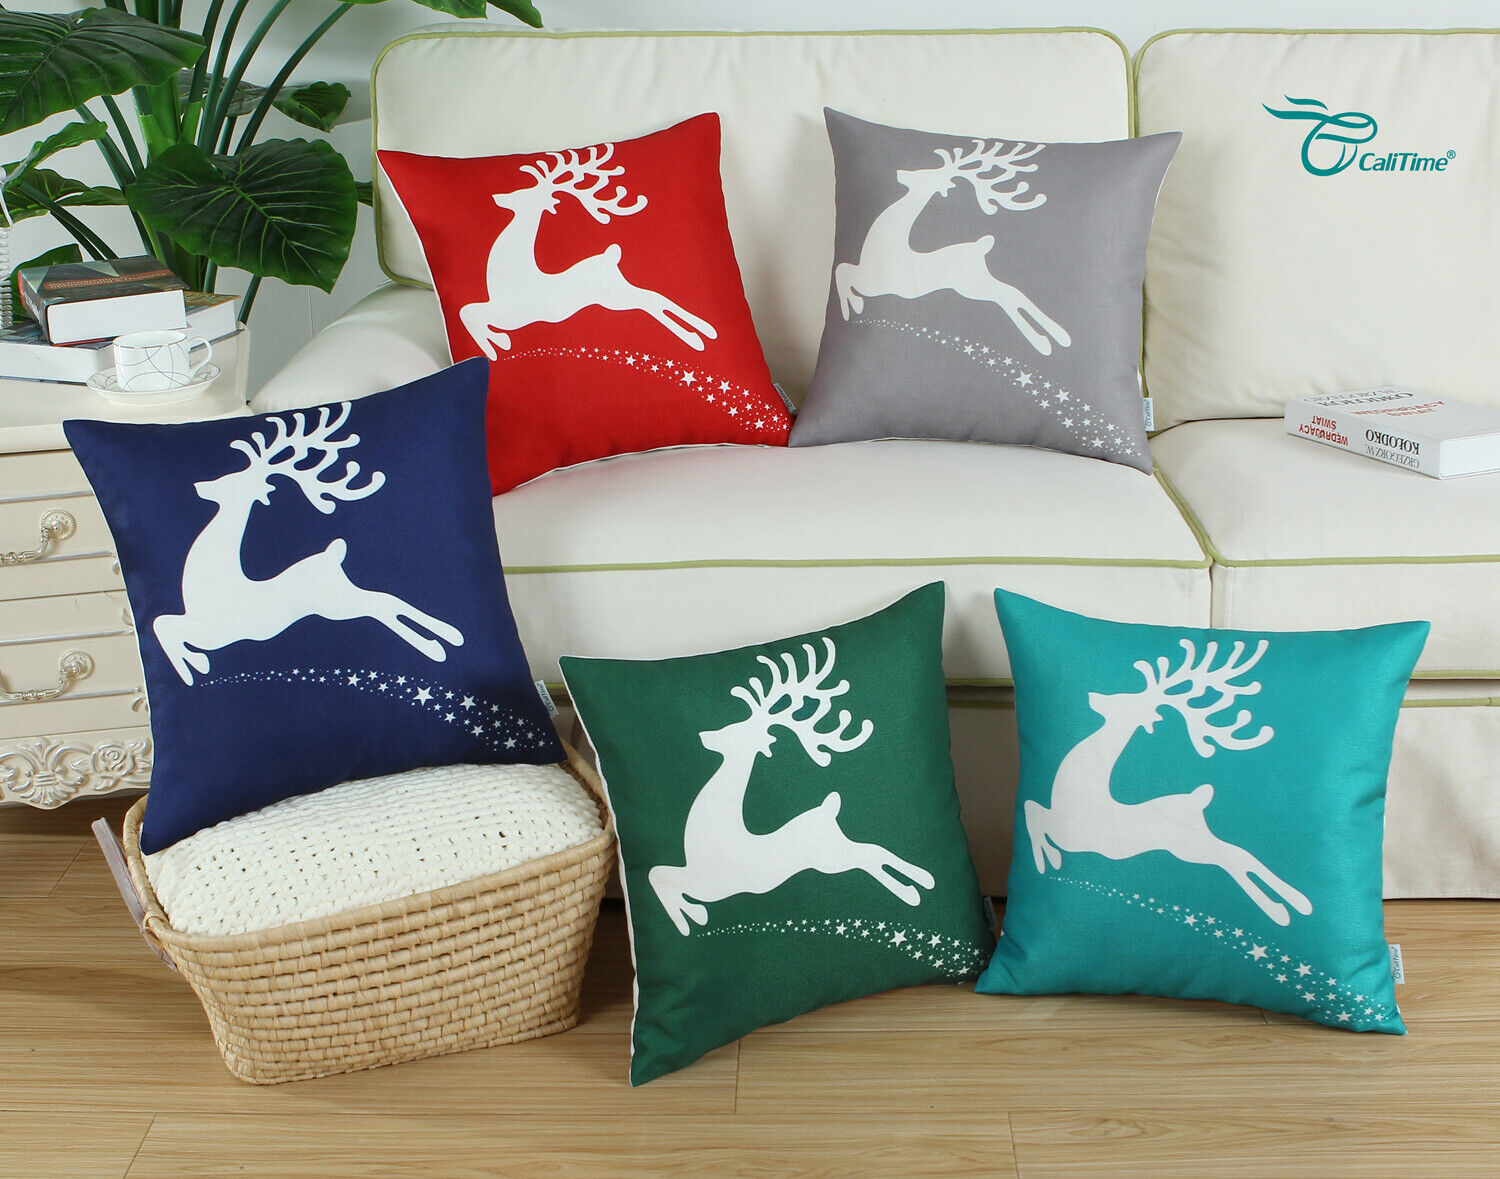 CaliTime Cushion Cover Pillow Shell Holiday Reindeer Stars S